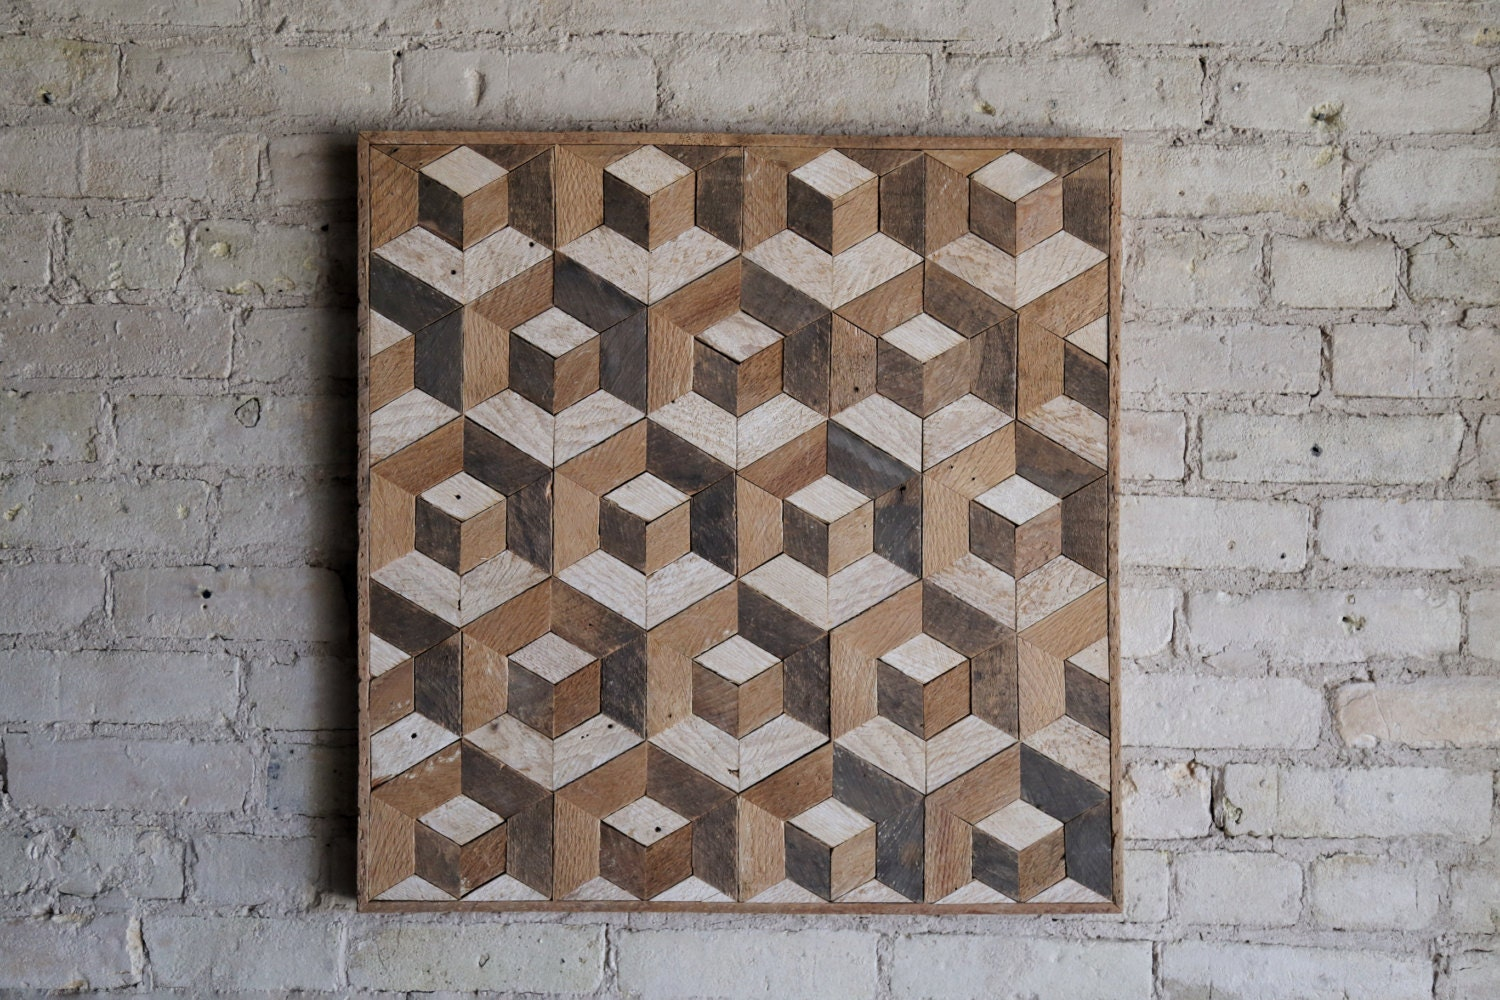 Reclaimed wood wall art wood decor reclaimed wood wood art reclaimed wood wall art wood decor reclaimed wood wood art rustic geometric wood decor handmade tesselation cube natural amipublicfo Choice Image